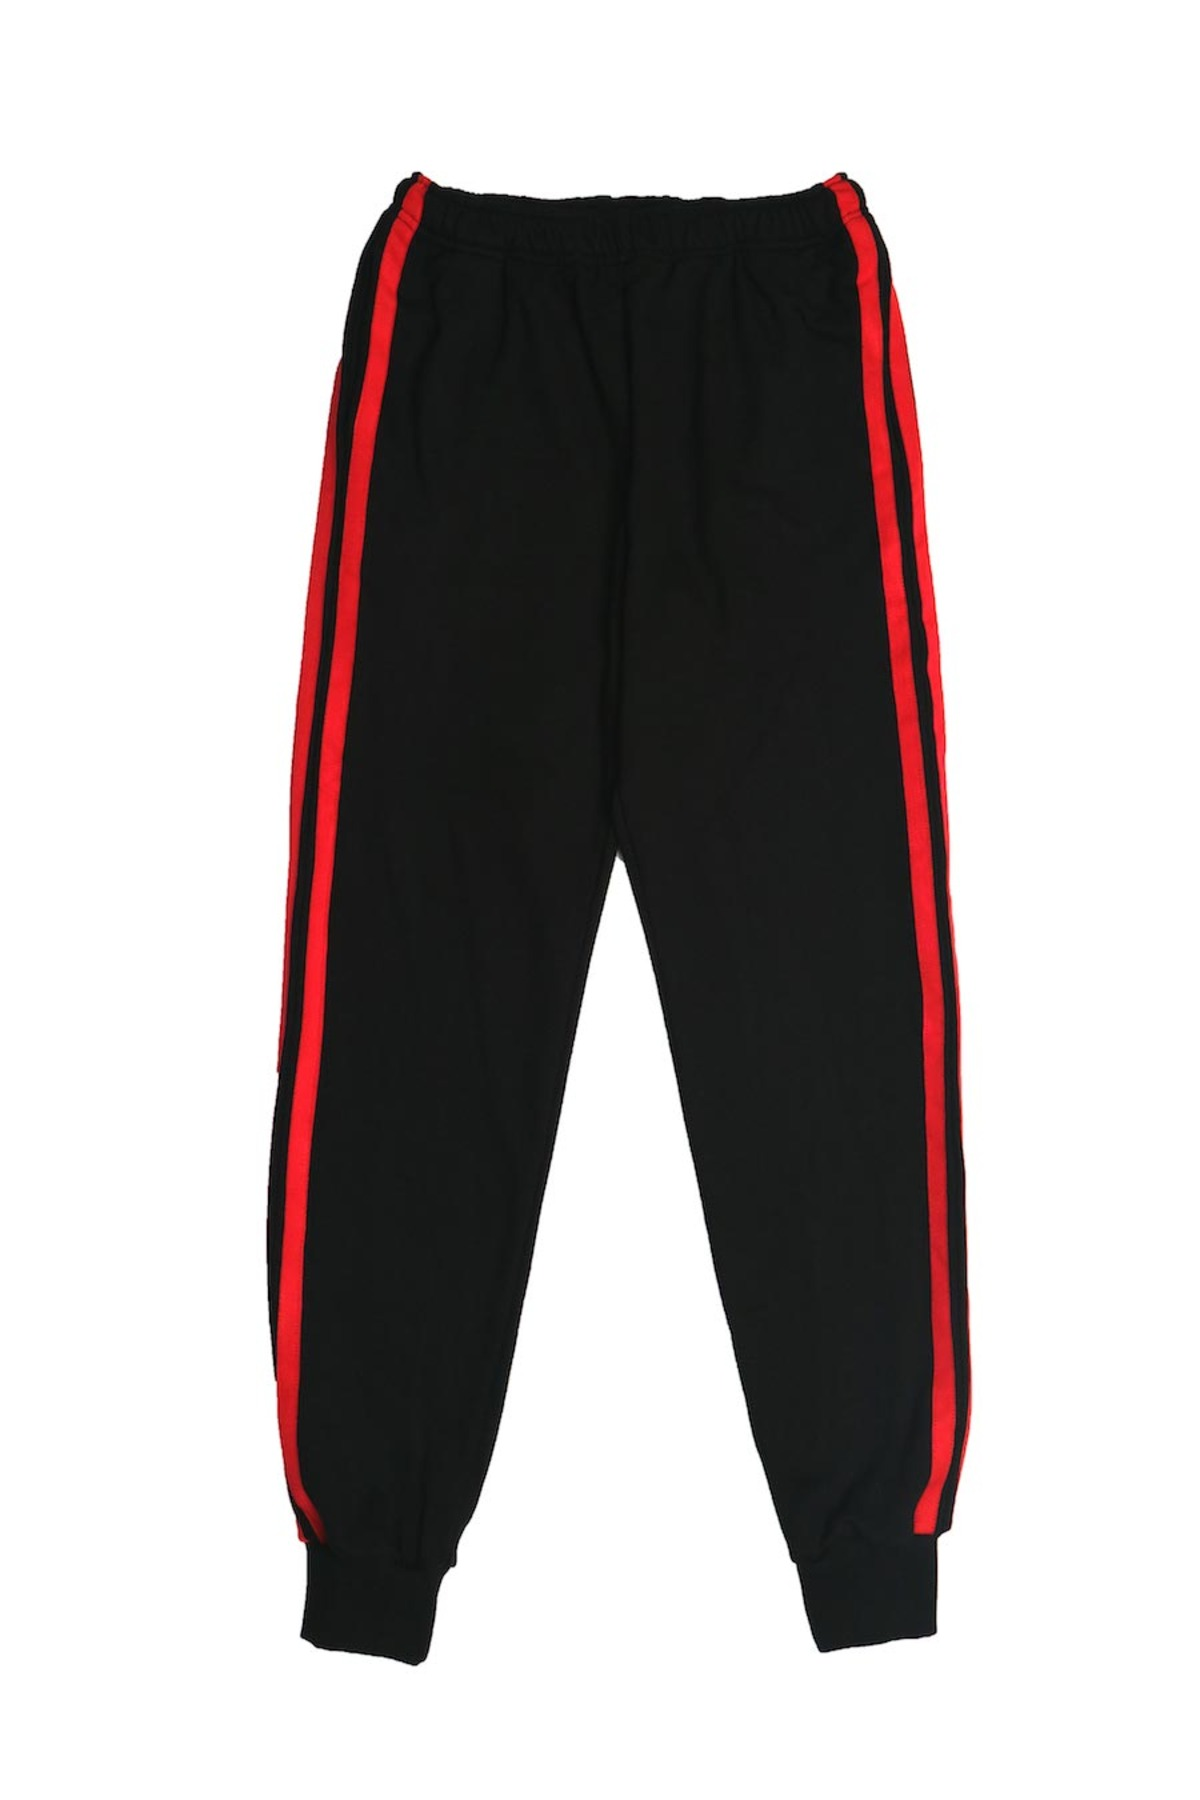 BLACK RED JOG PANTS